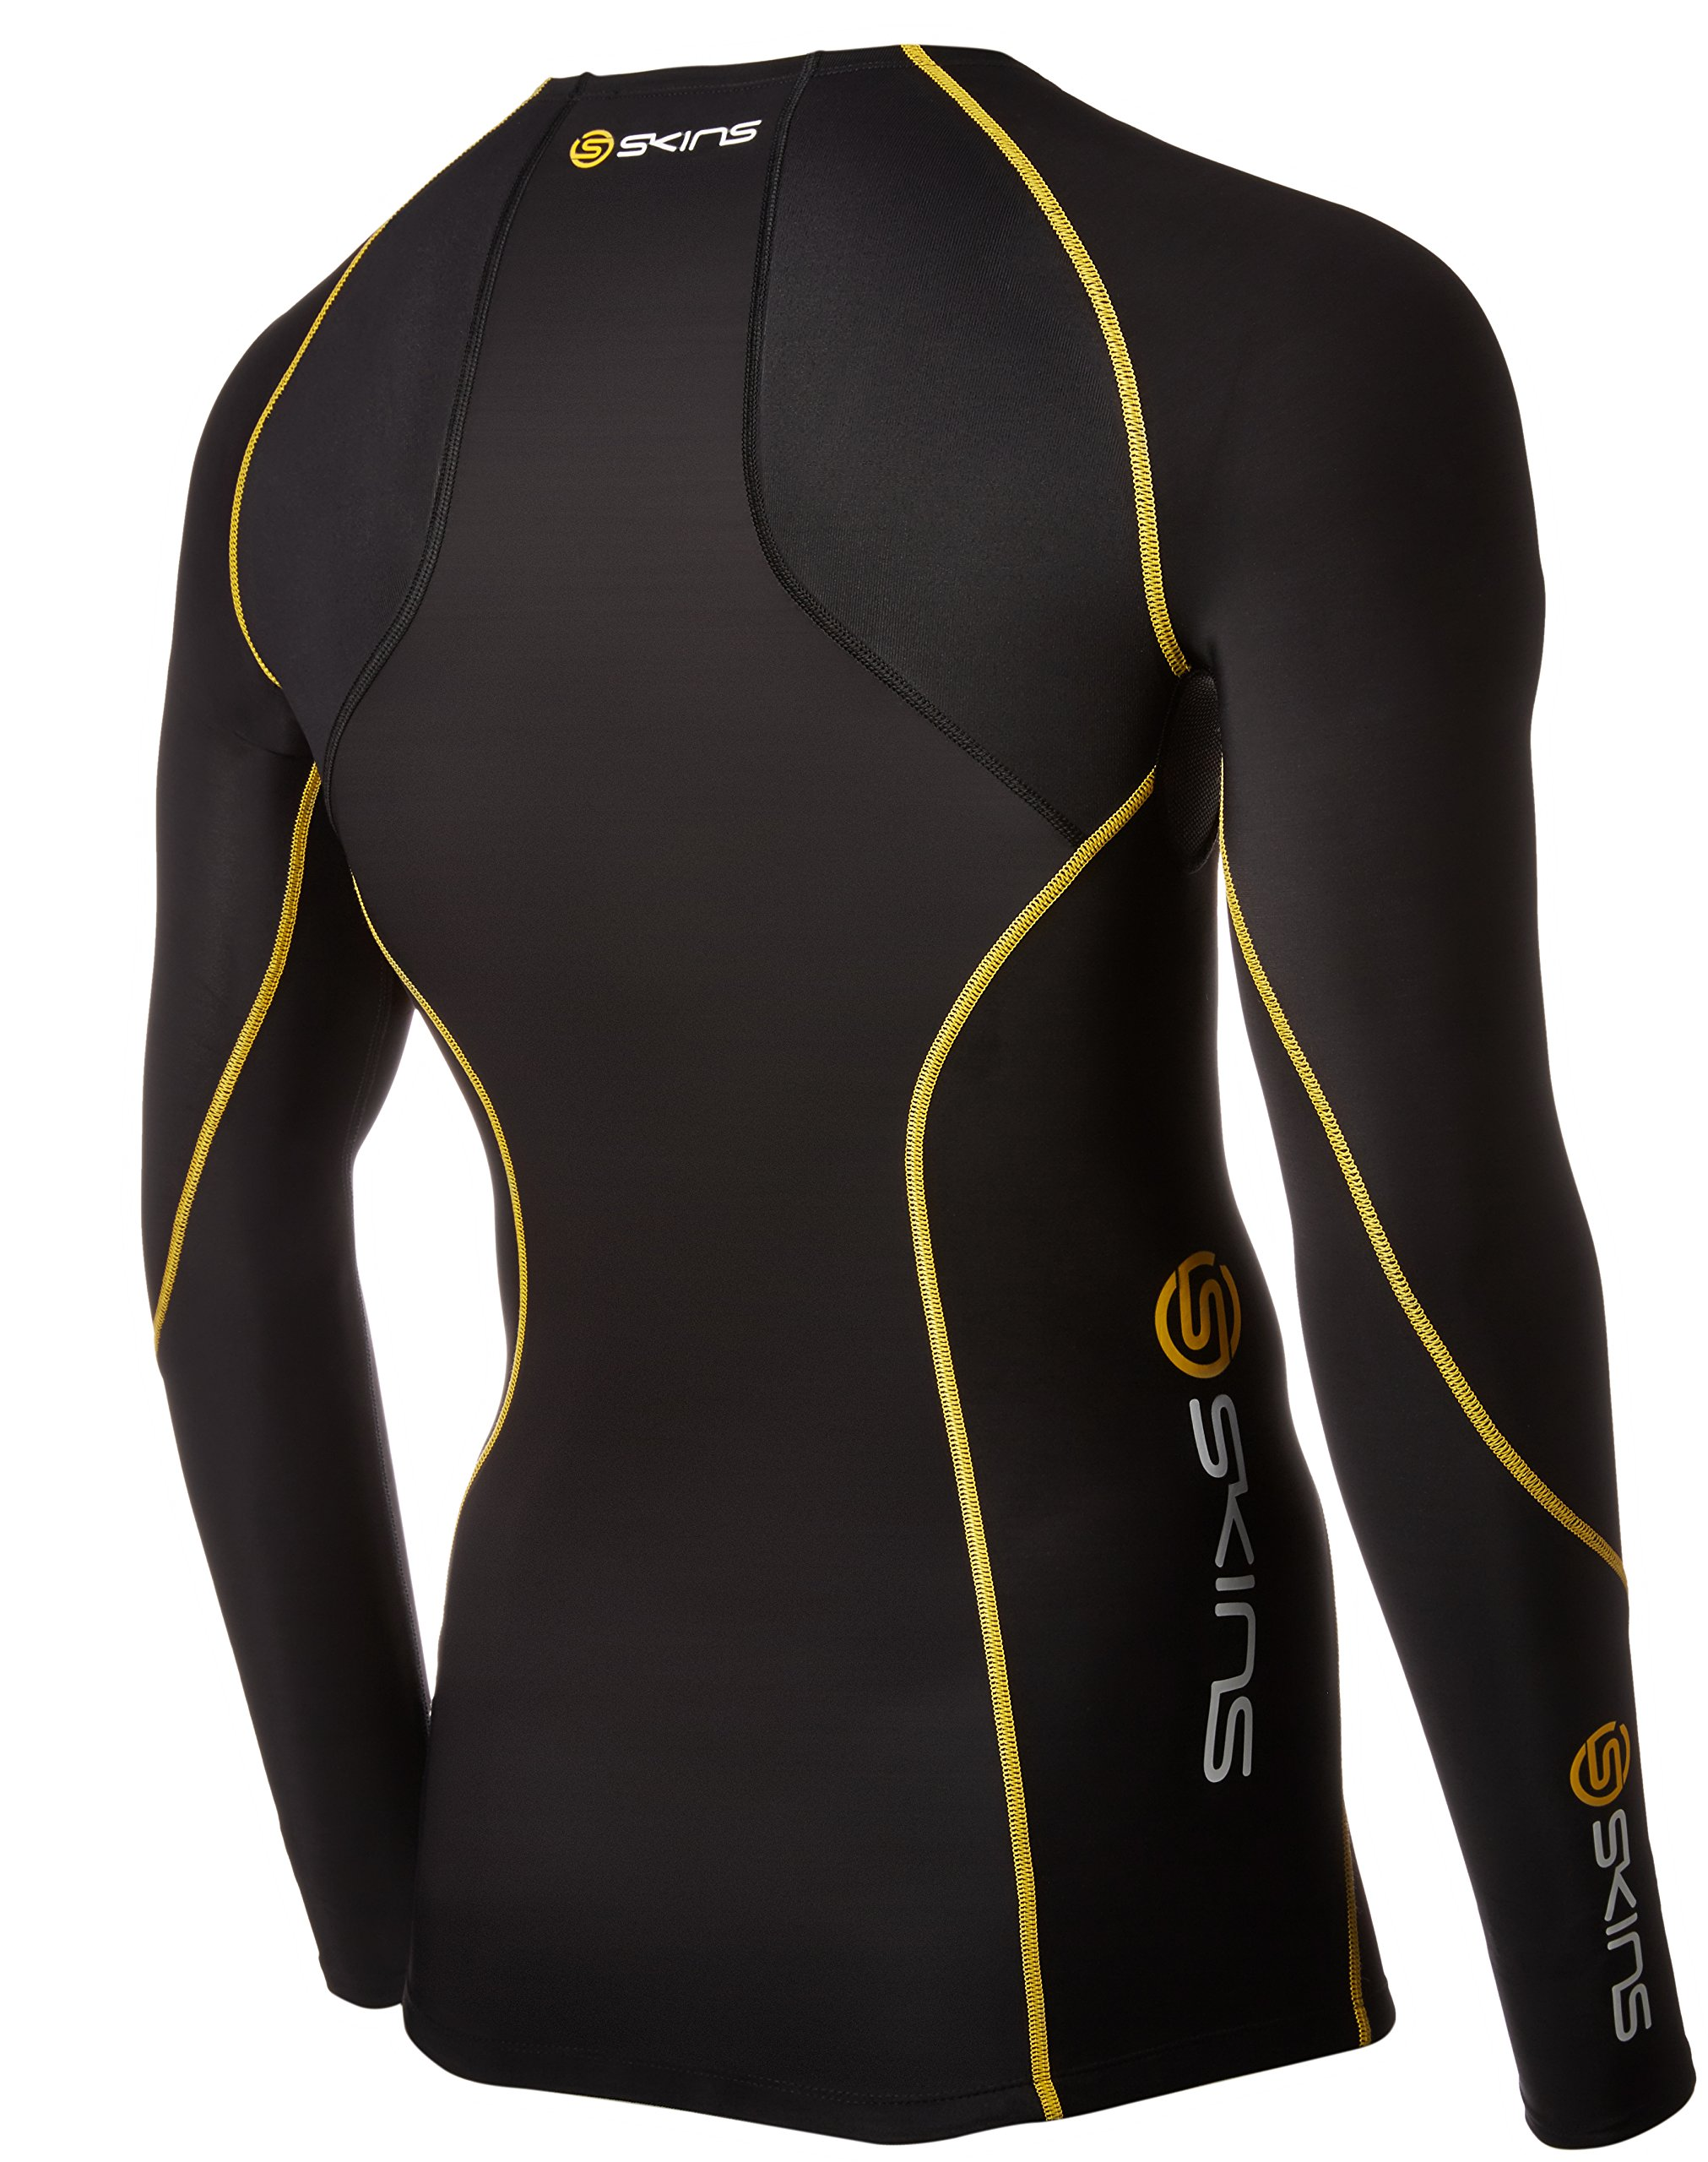 Skins A200 Men's Long Sleeve Compression Top, XX-Large Black/Yellow by Skins (Image #2)